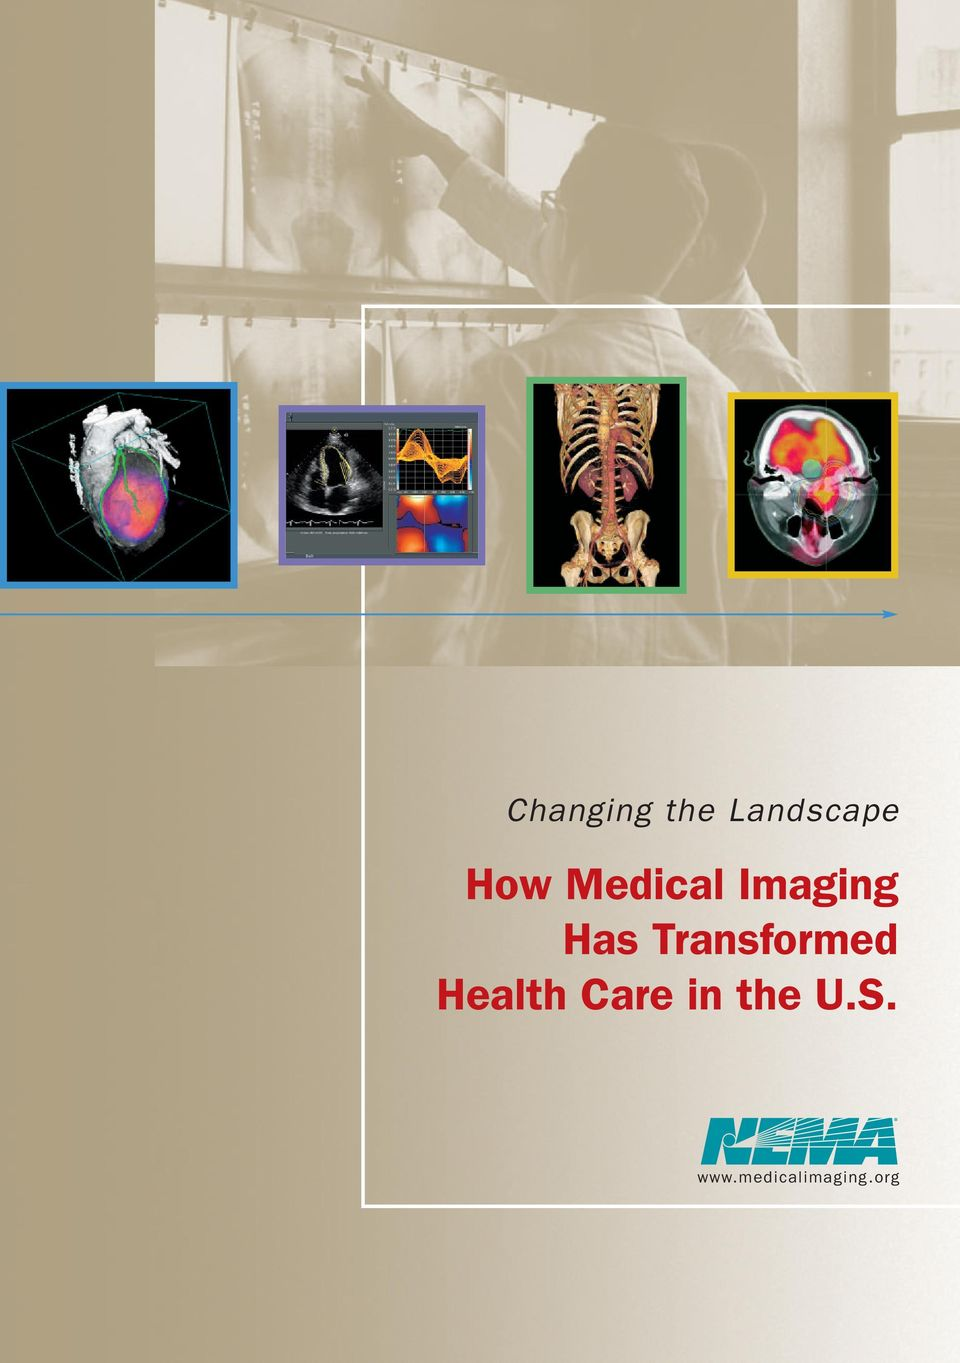 Transformed Health Care in